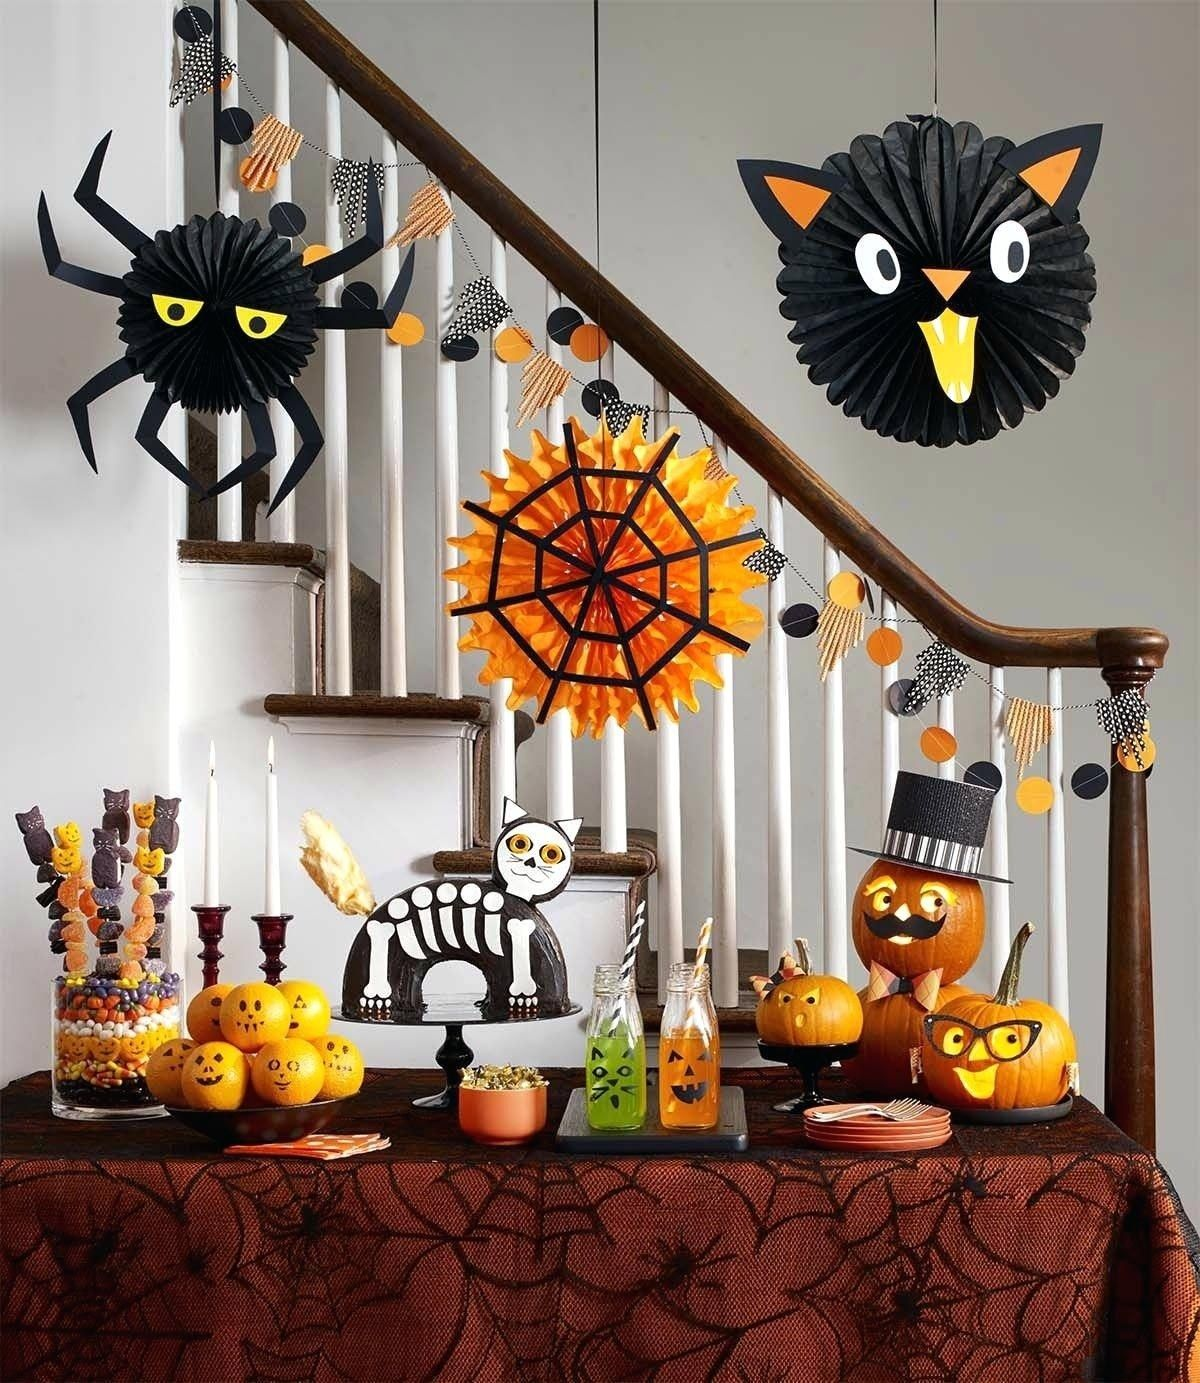 15 Halloween Decoration Clearance Below Are The Halloween